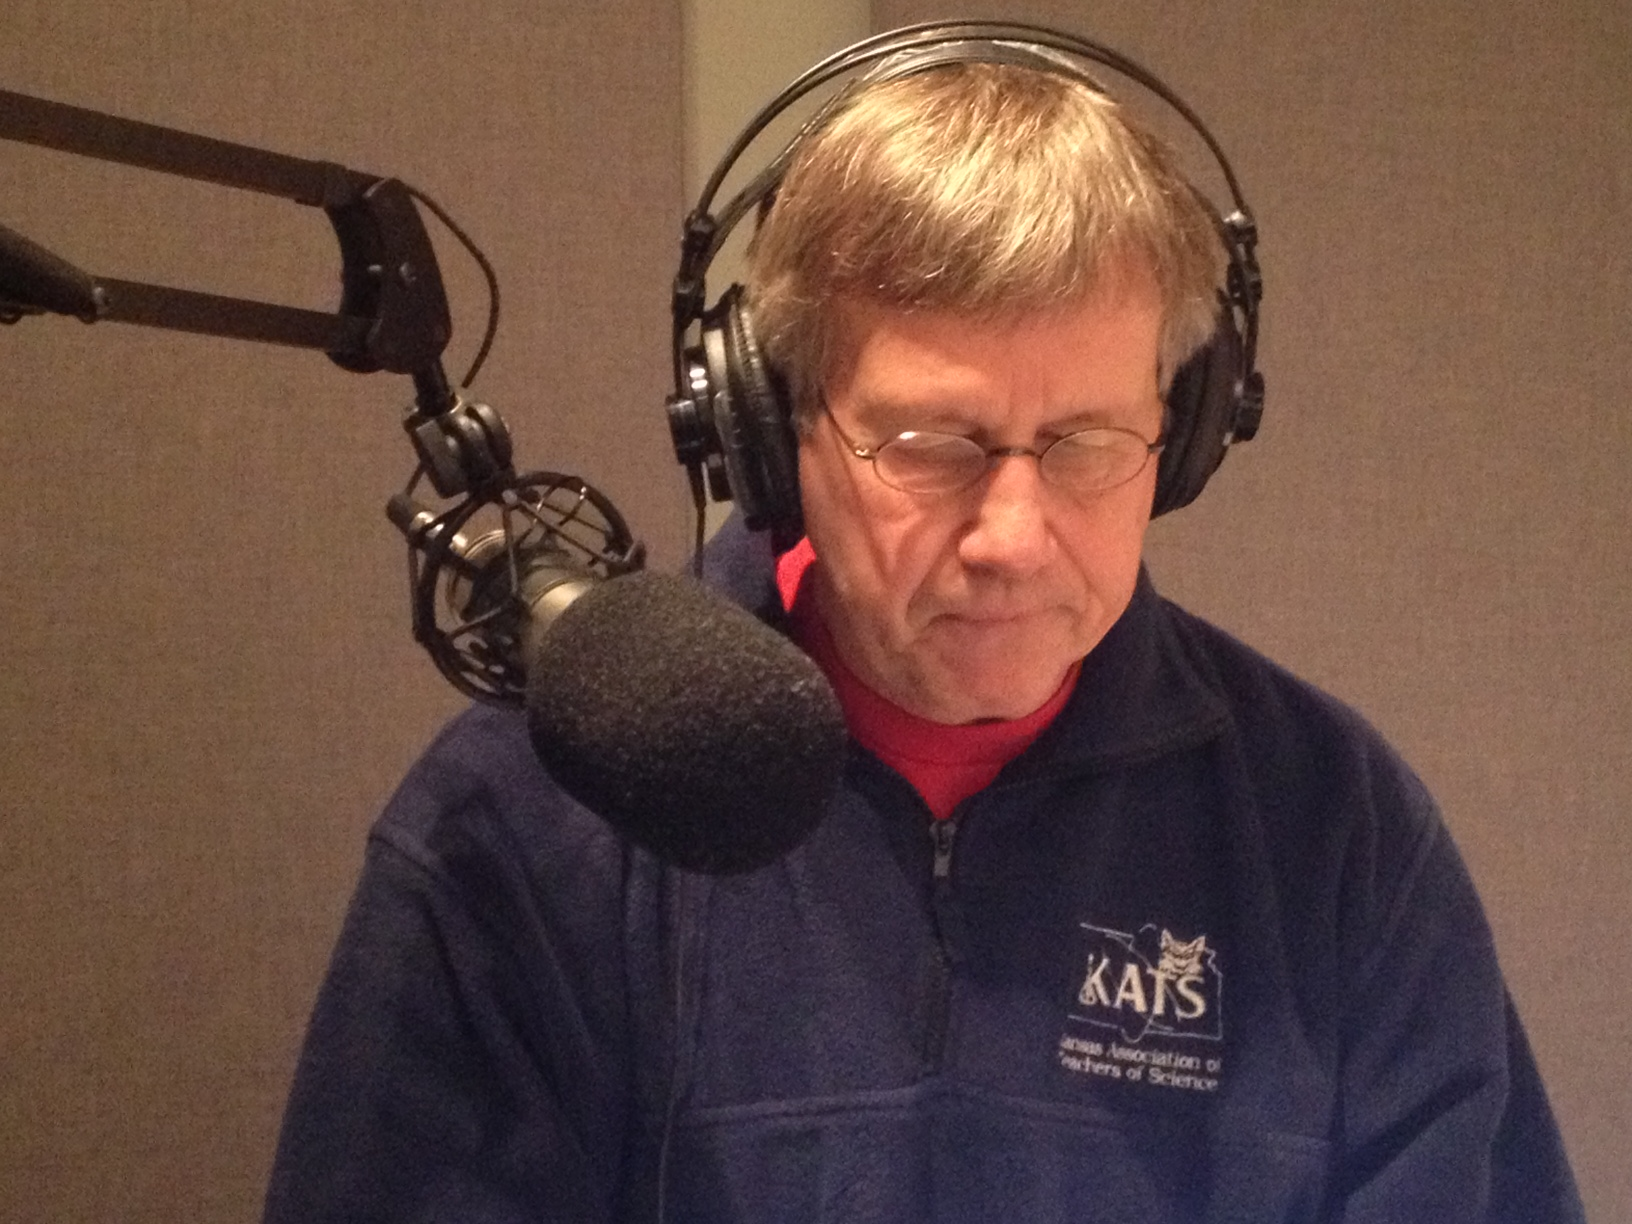 Rex Buchanan, recording a commentary in the KPR studios.  (File photo by J. Schafer)